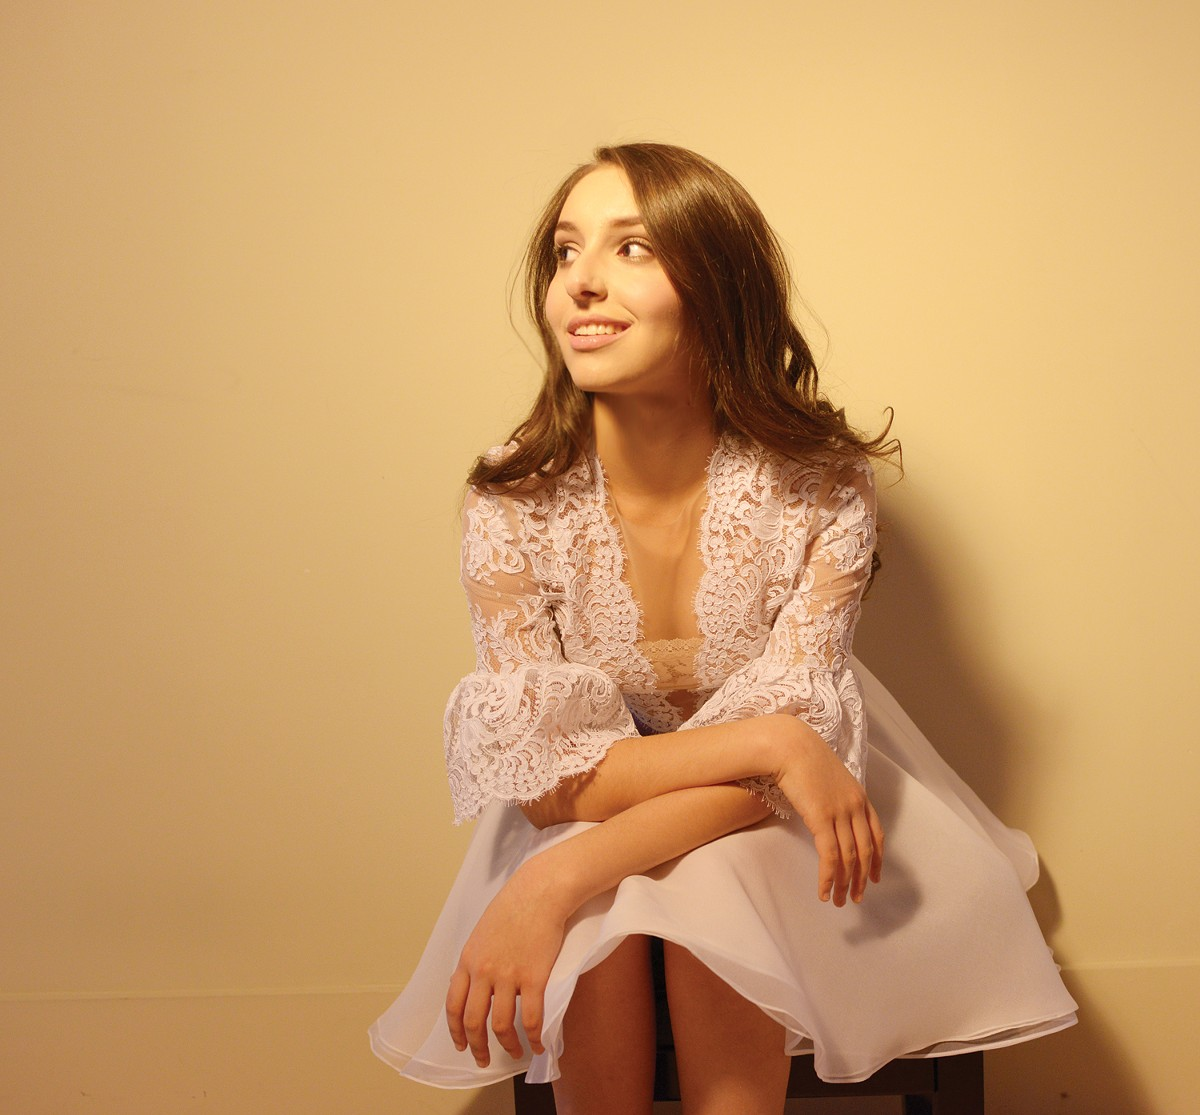 Mexican piano prodigy Daniela Liebman gives a free recital at the Cleveland Museum of Art. See: Sunday.